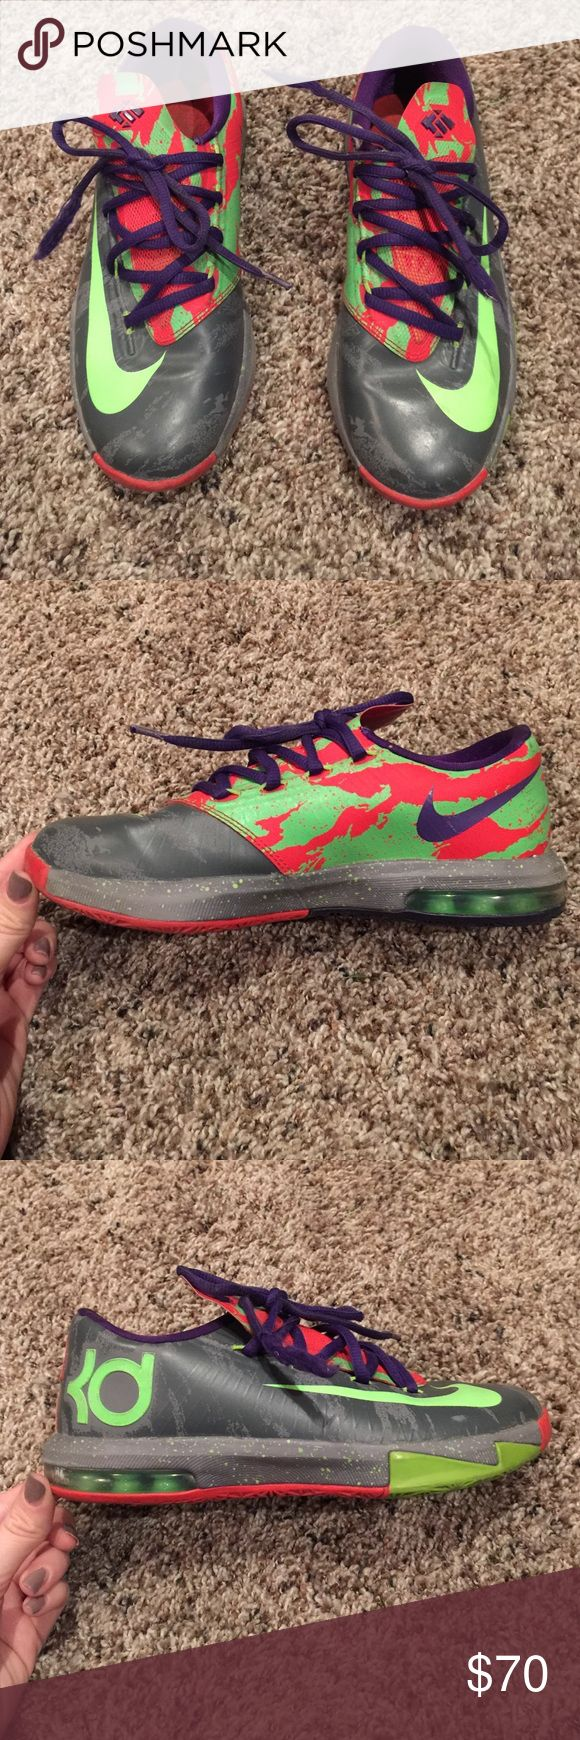 Nike KDs Size youth 4. These shoes were only worn for basketball games, not everyday wear. Excellent condition. Nike Shoes Sneakers